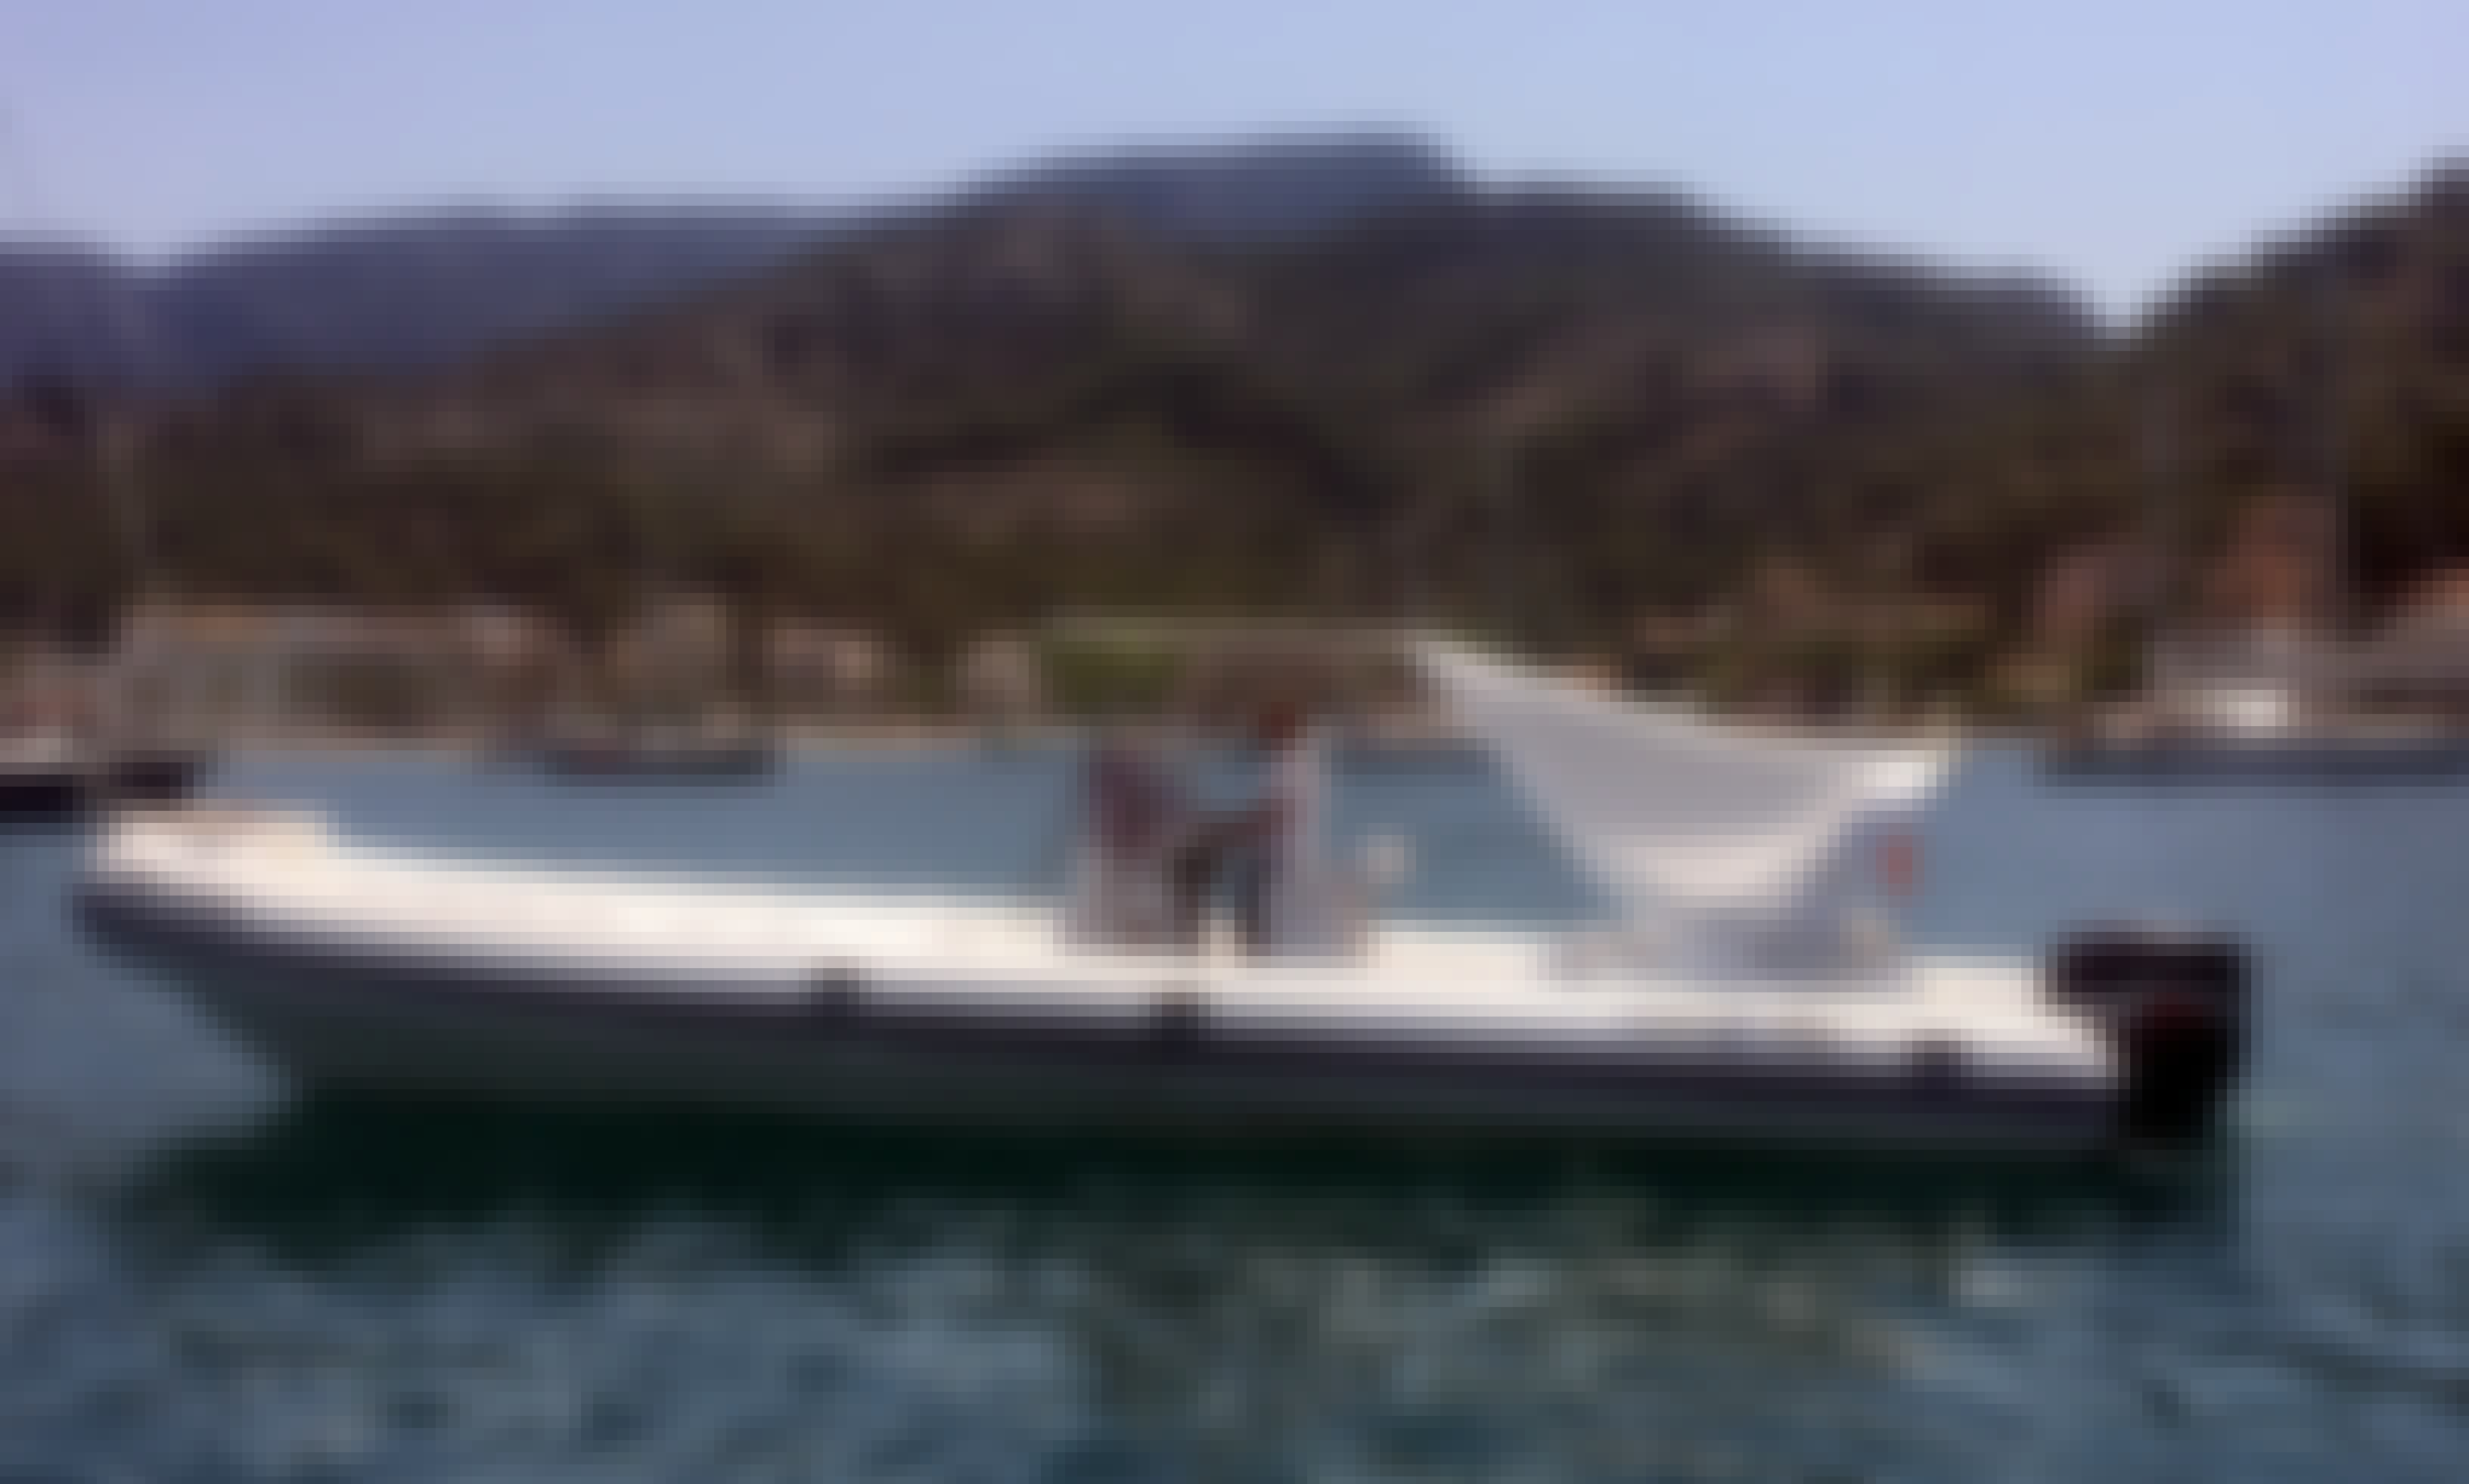 2009 Nuova Jolly King RIB Rental in Port d'Andratx, Spain for 12 person